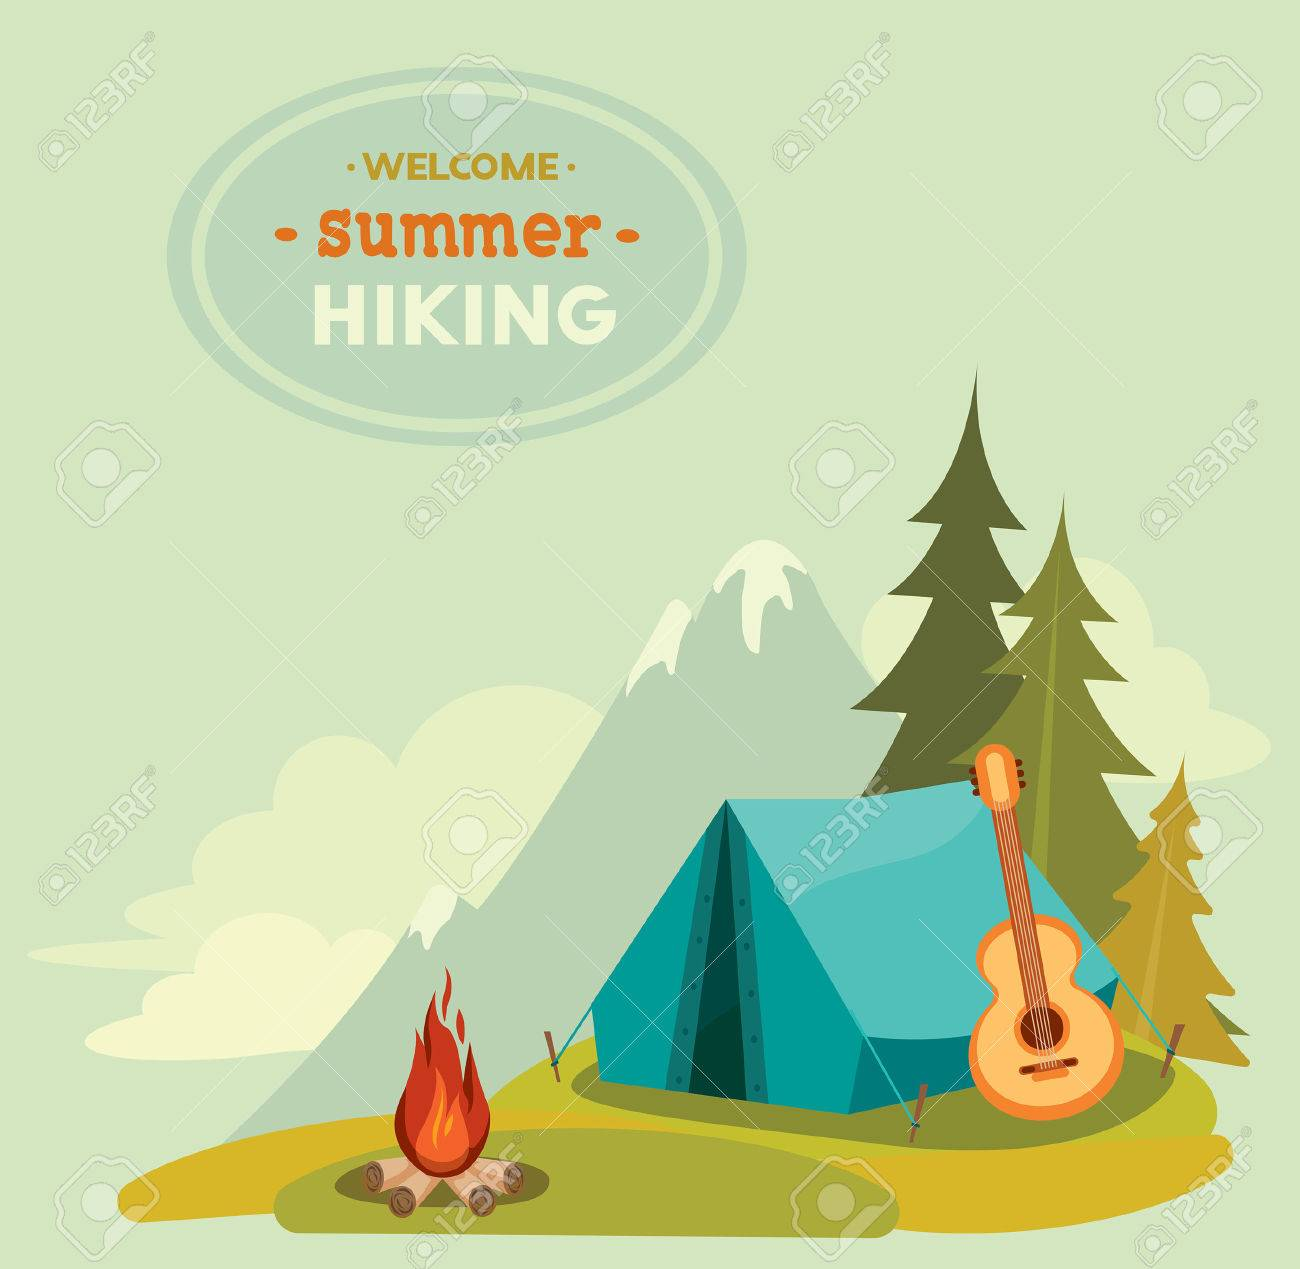 Summer hiking - vector illustration with blue tent, guitar and campfire on a green grass on mountain background. - 46035977